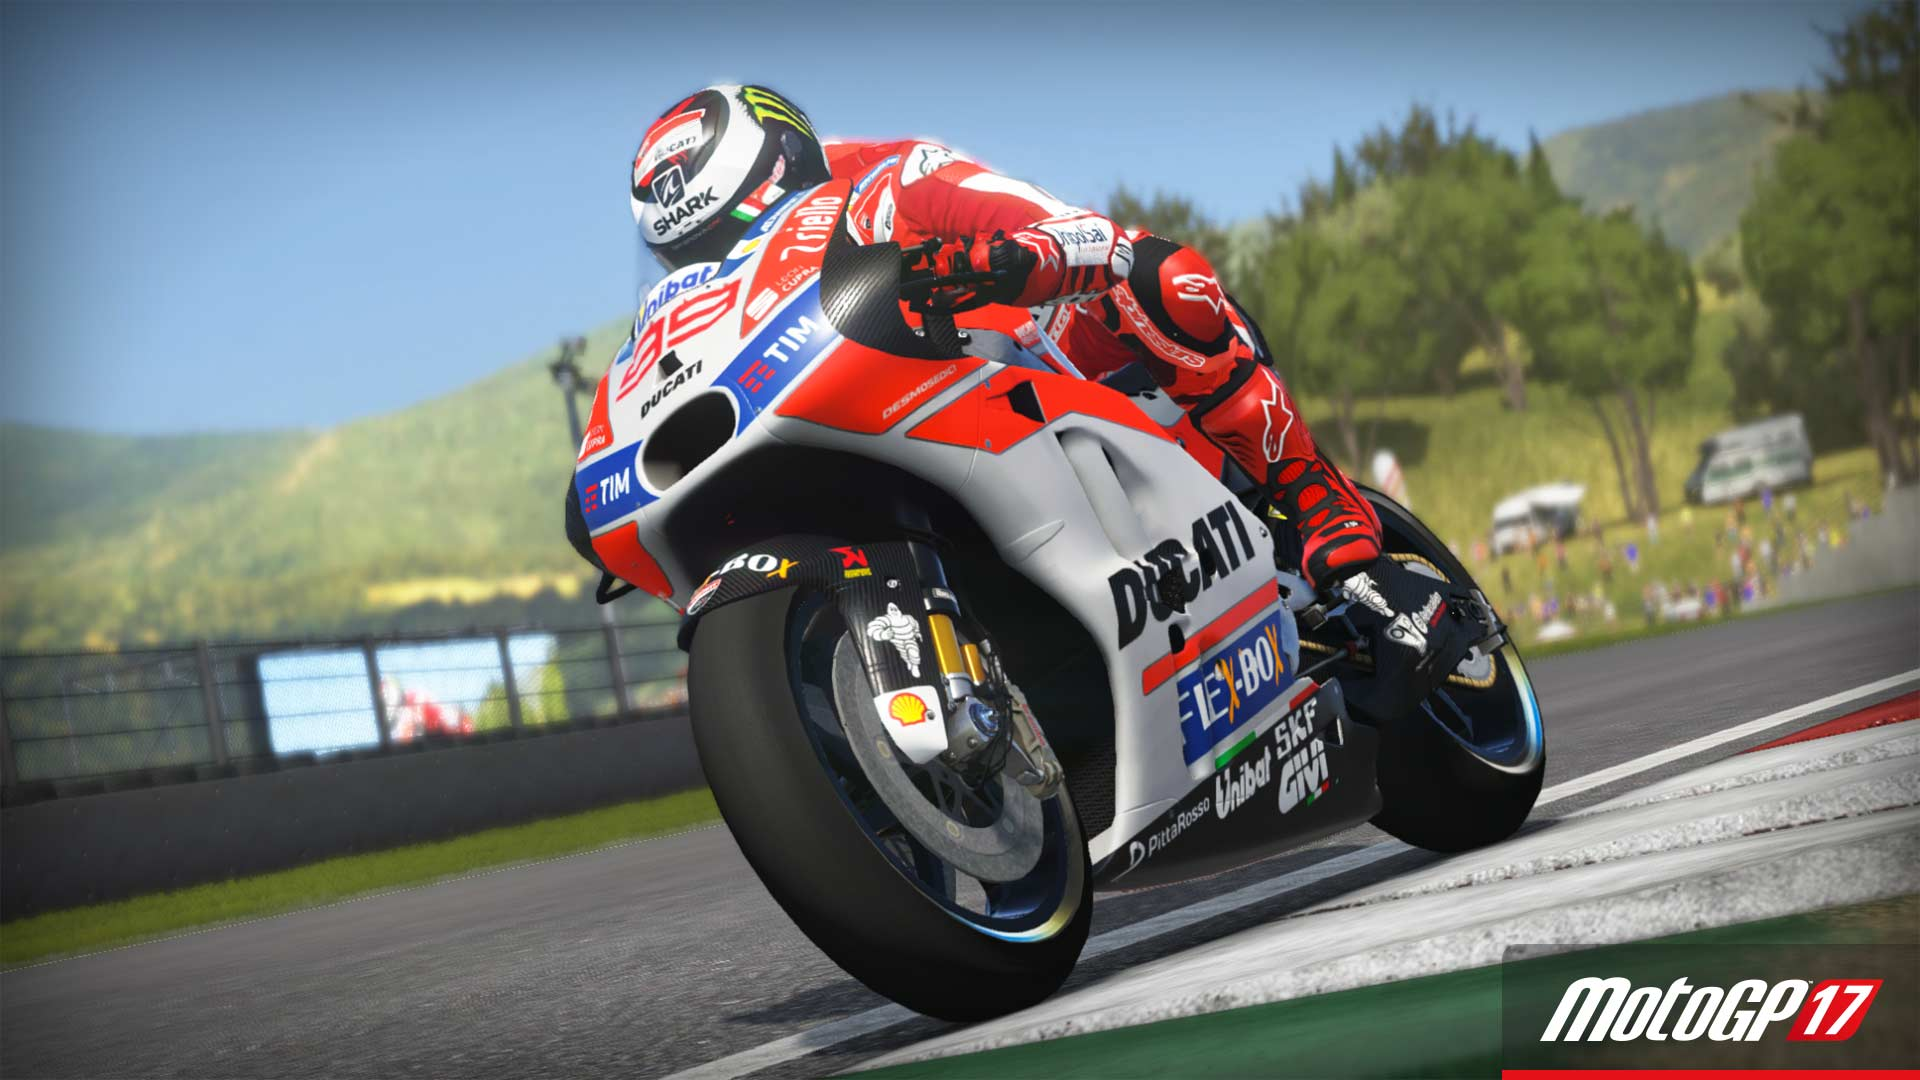 MotoGP 17 Launch images 4